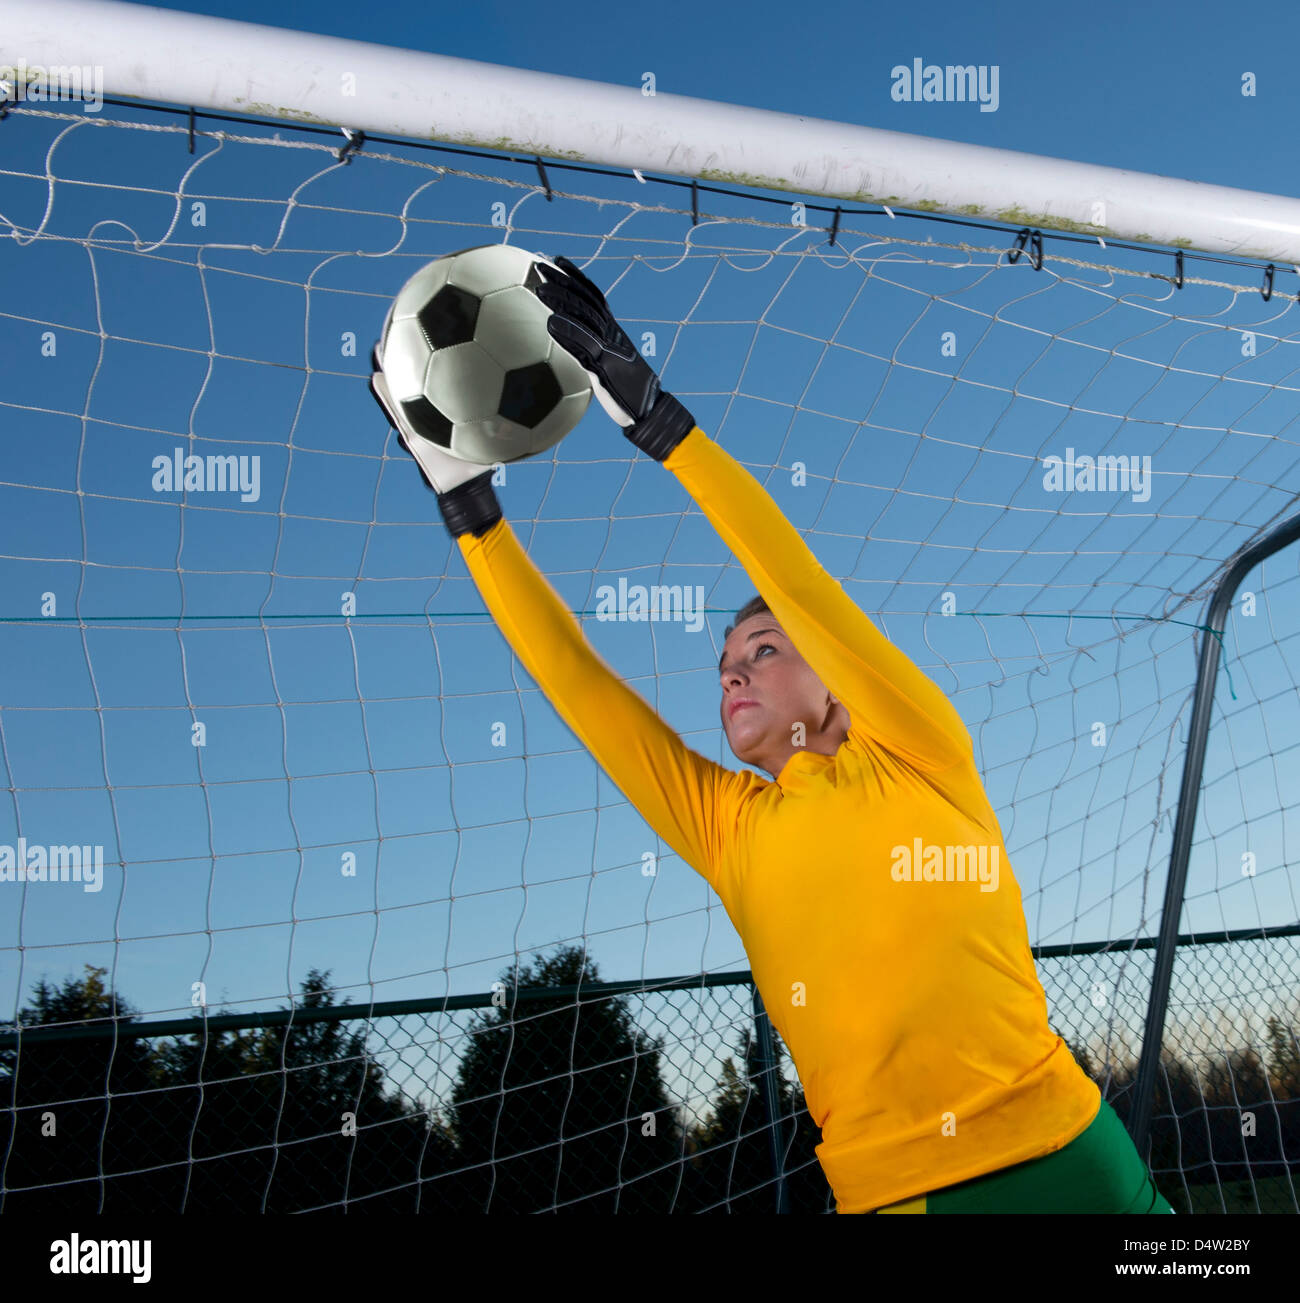 Soccer player catching ball in goal - Stock Image